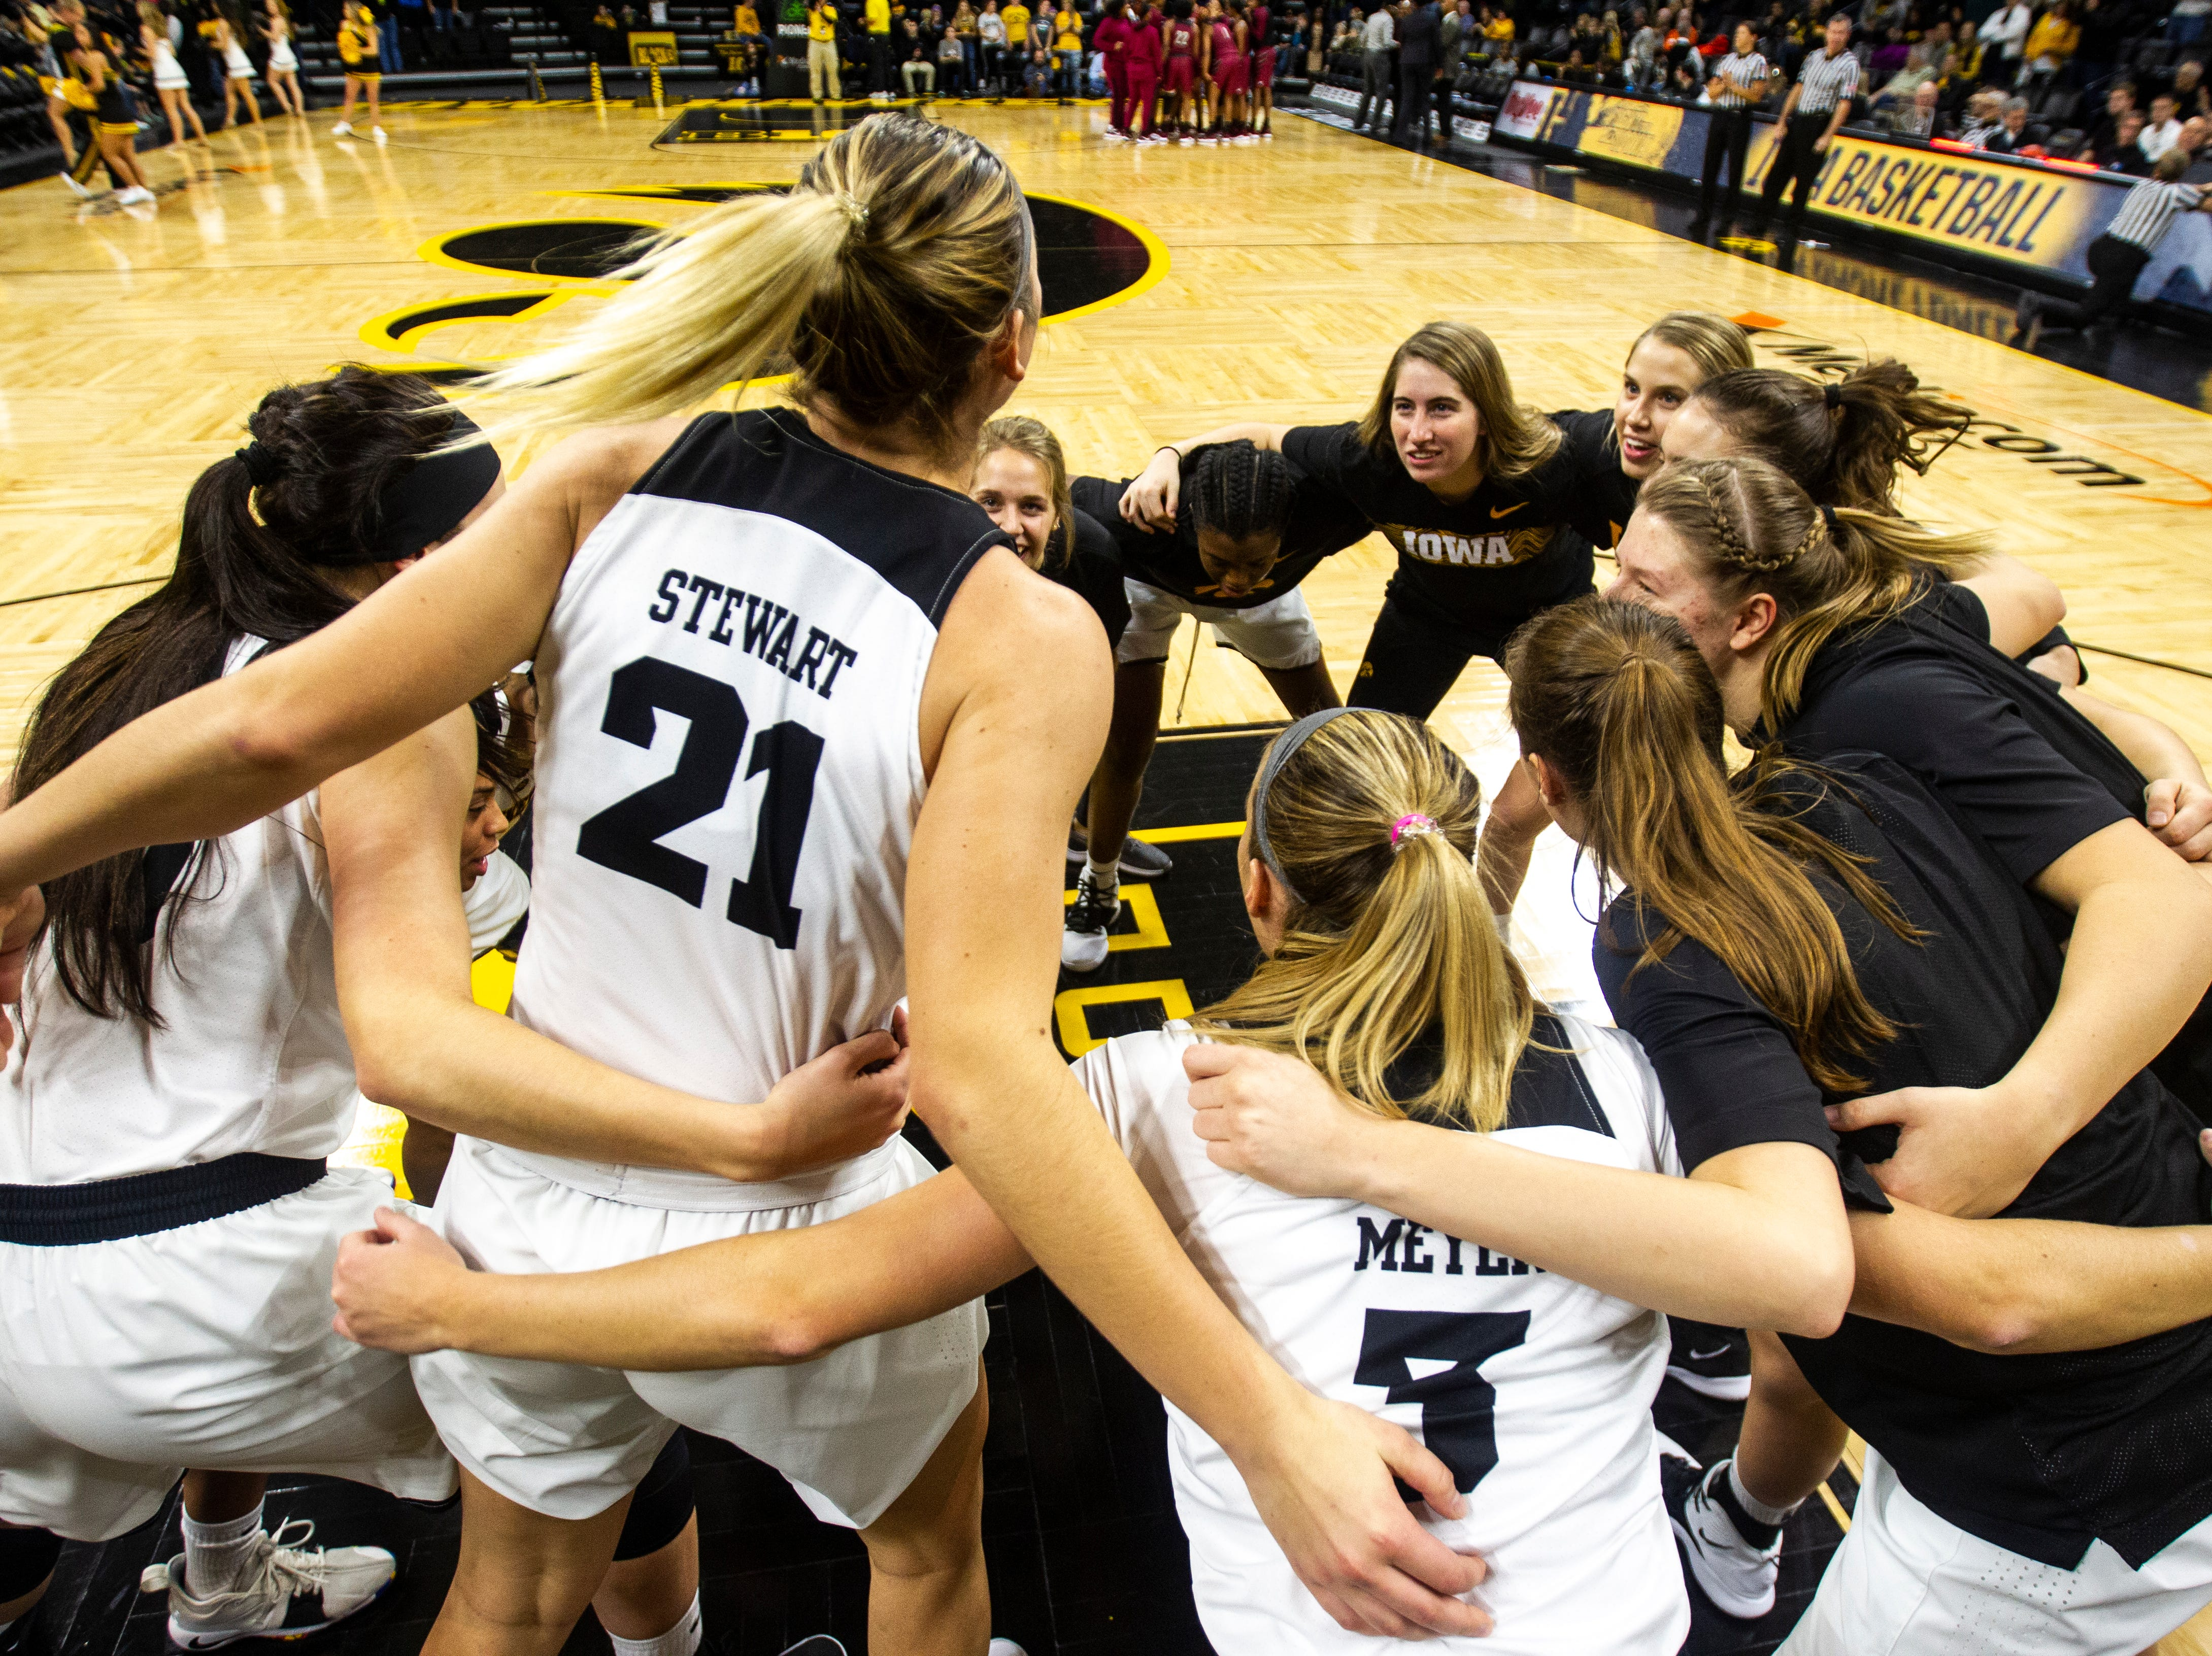 Iowa Hawkeyes players huddle before an NCAA women's basketball game on Saturday, Nov. 17, 2018, at Carver-Hawkeye Arena in Iowa City.